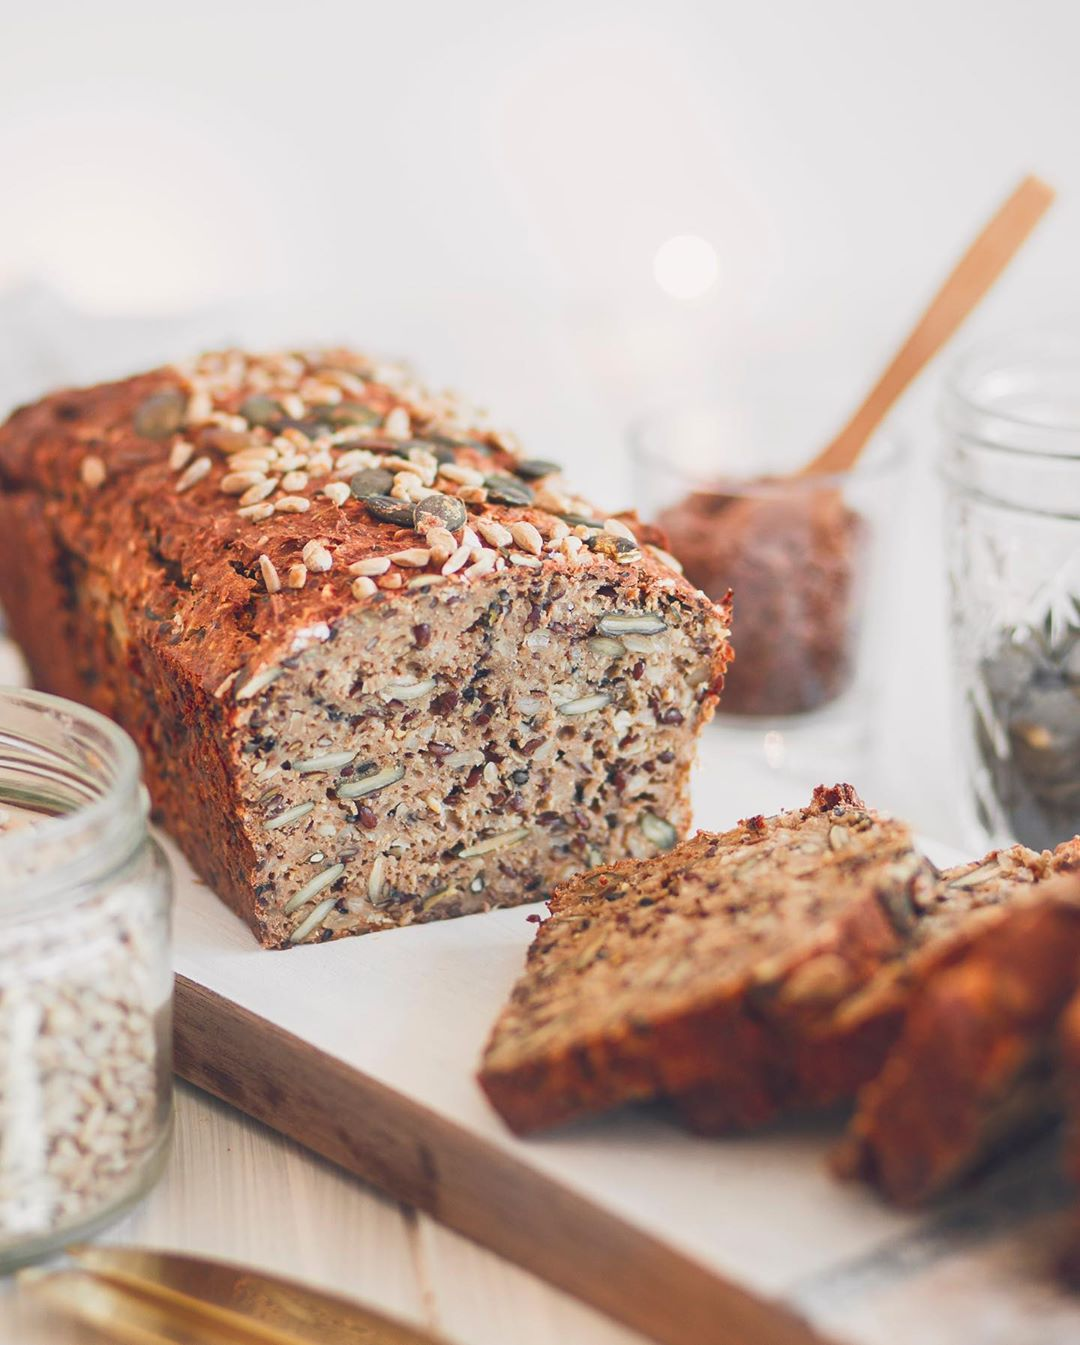 anzeige wholegrain protein seed bread i am so in love wit multip img 0 449bee88